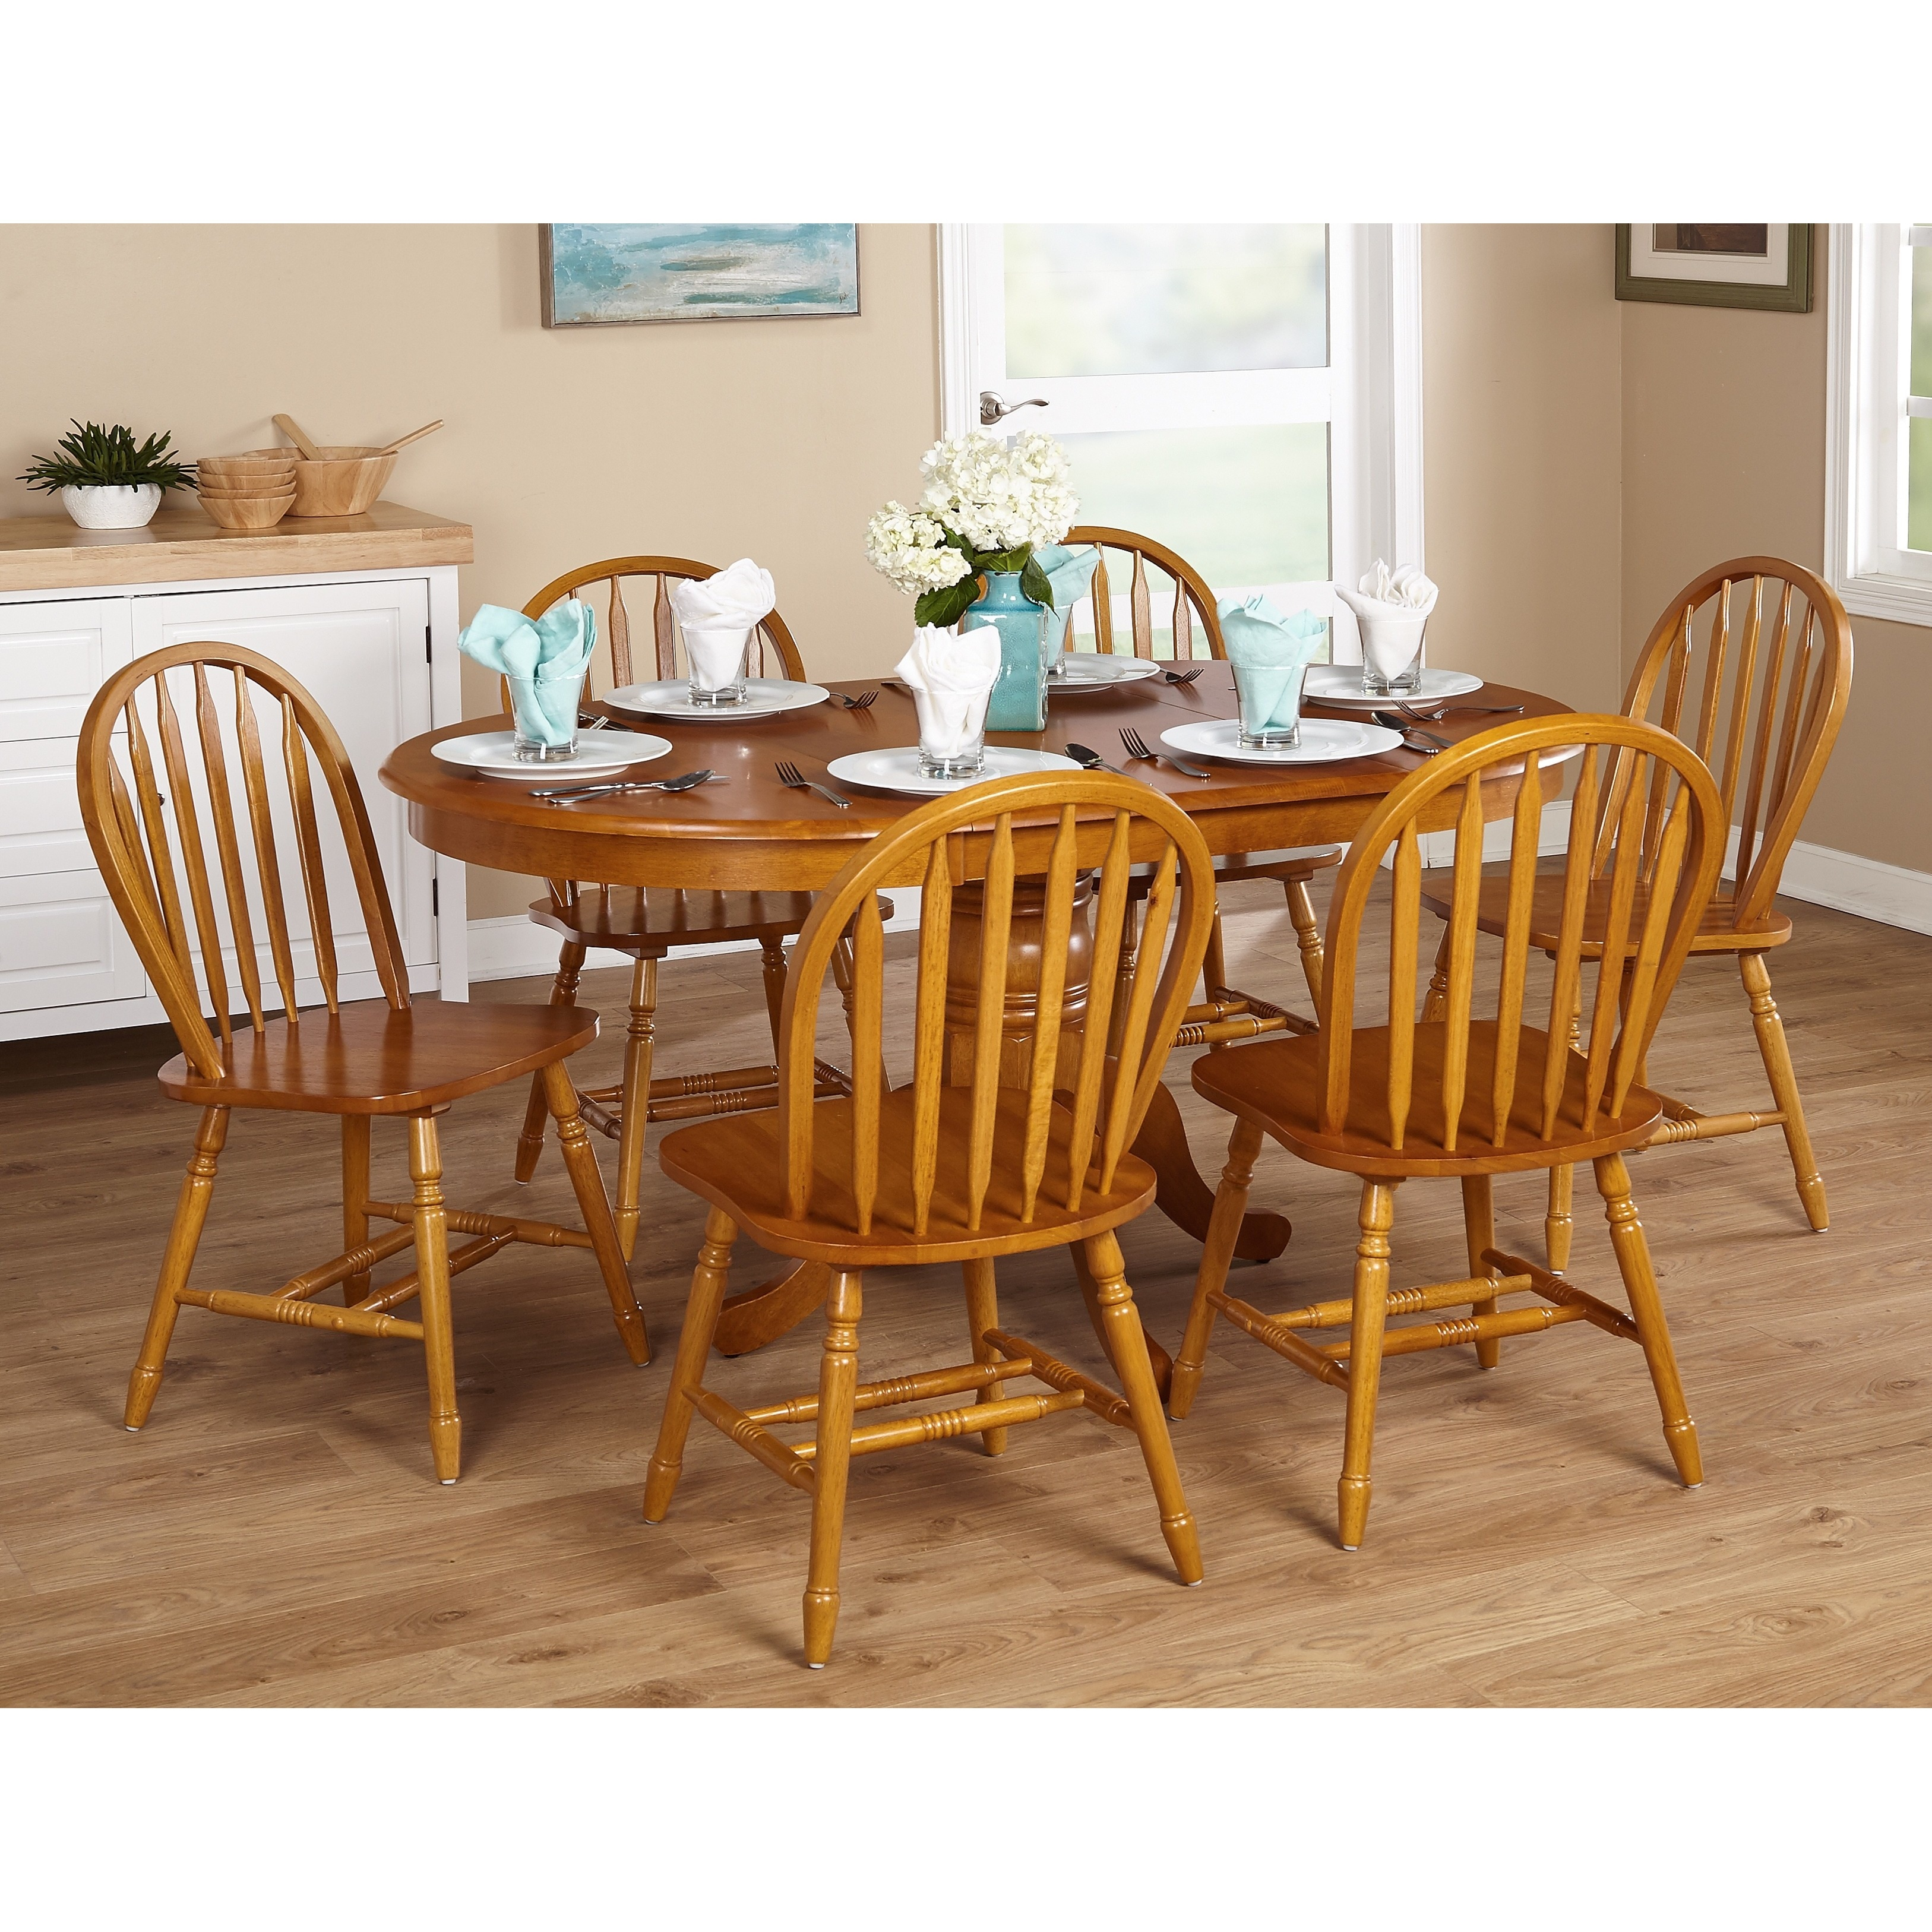 Oak Dining Set 7 Piece Farmhouse Wood Home Room Kitchen